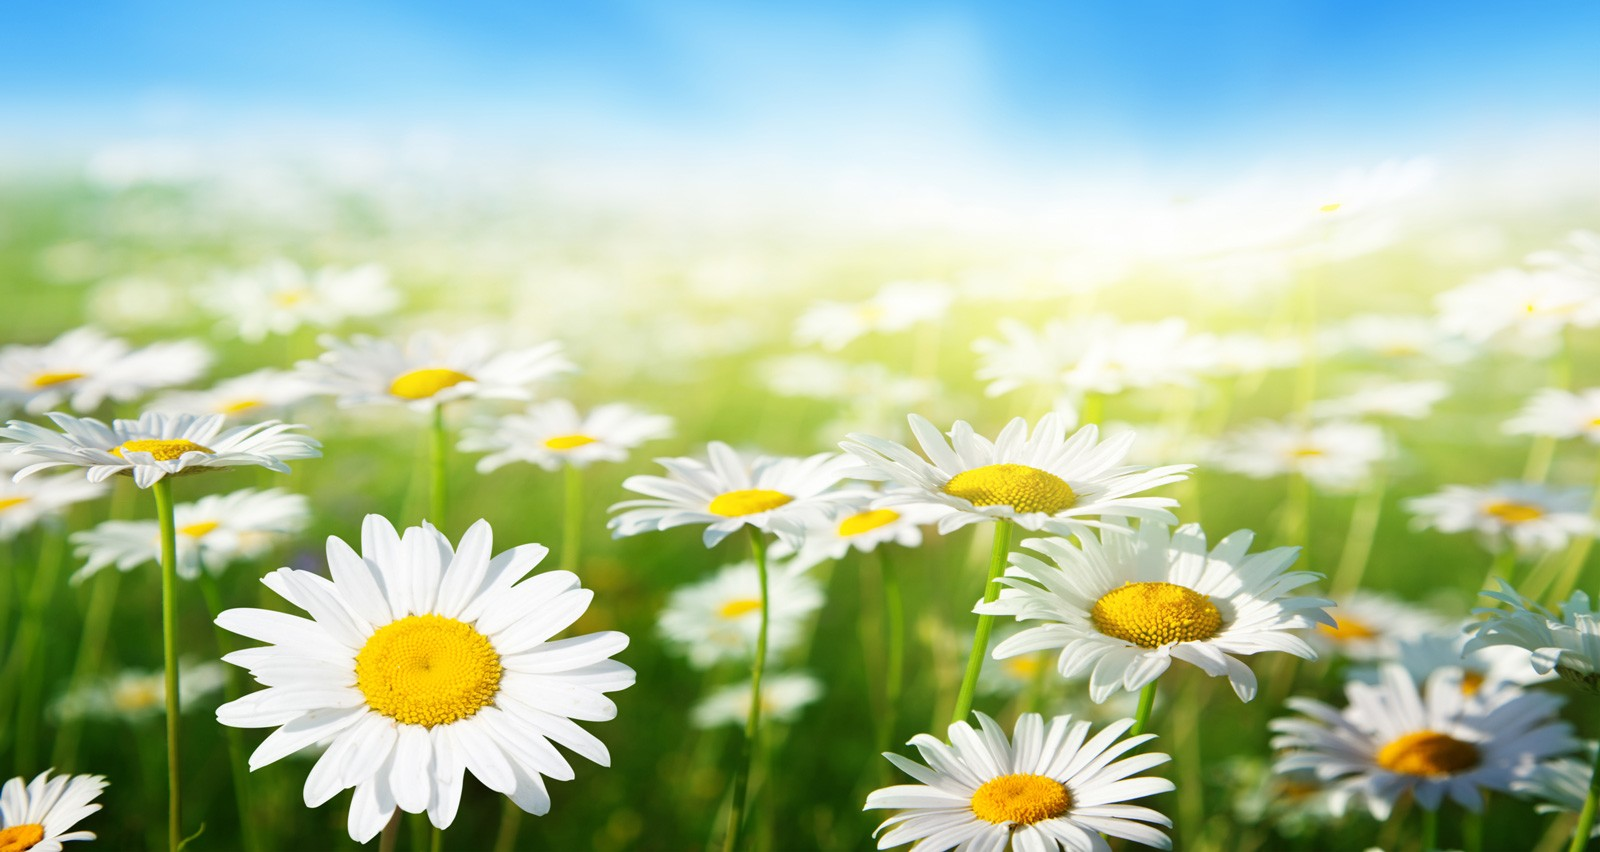 Symbolic meaning of the daisy on whats your sign the daisy also symbolizes the aspect of motherhood and childbirth in association with freya which carries on the theme of unblemished youth izmirmasajfo Image collections